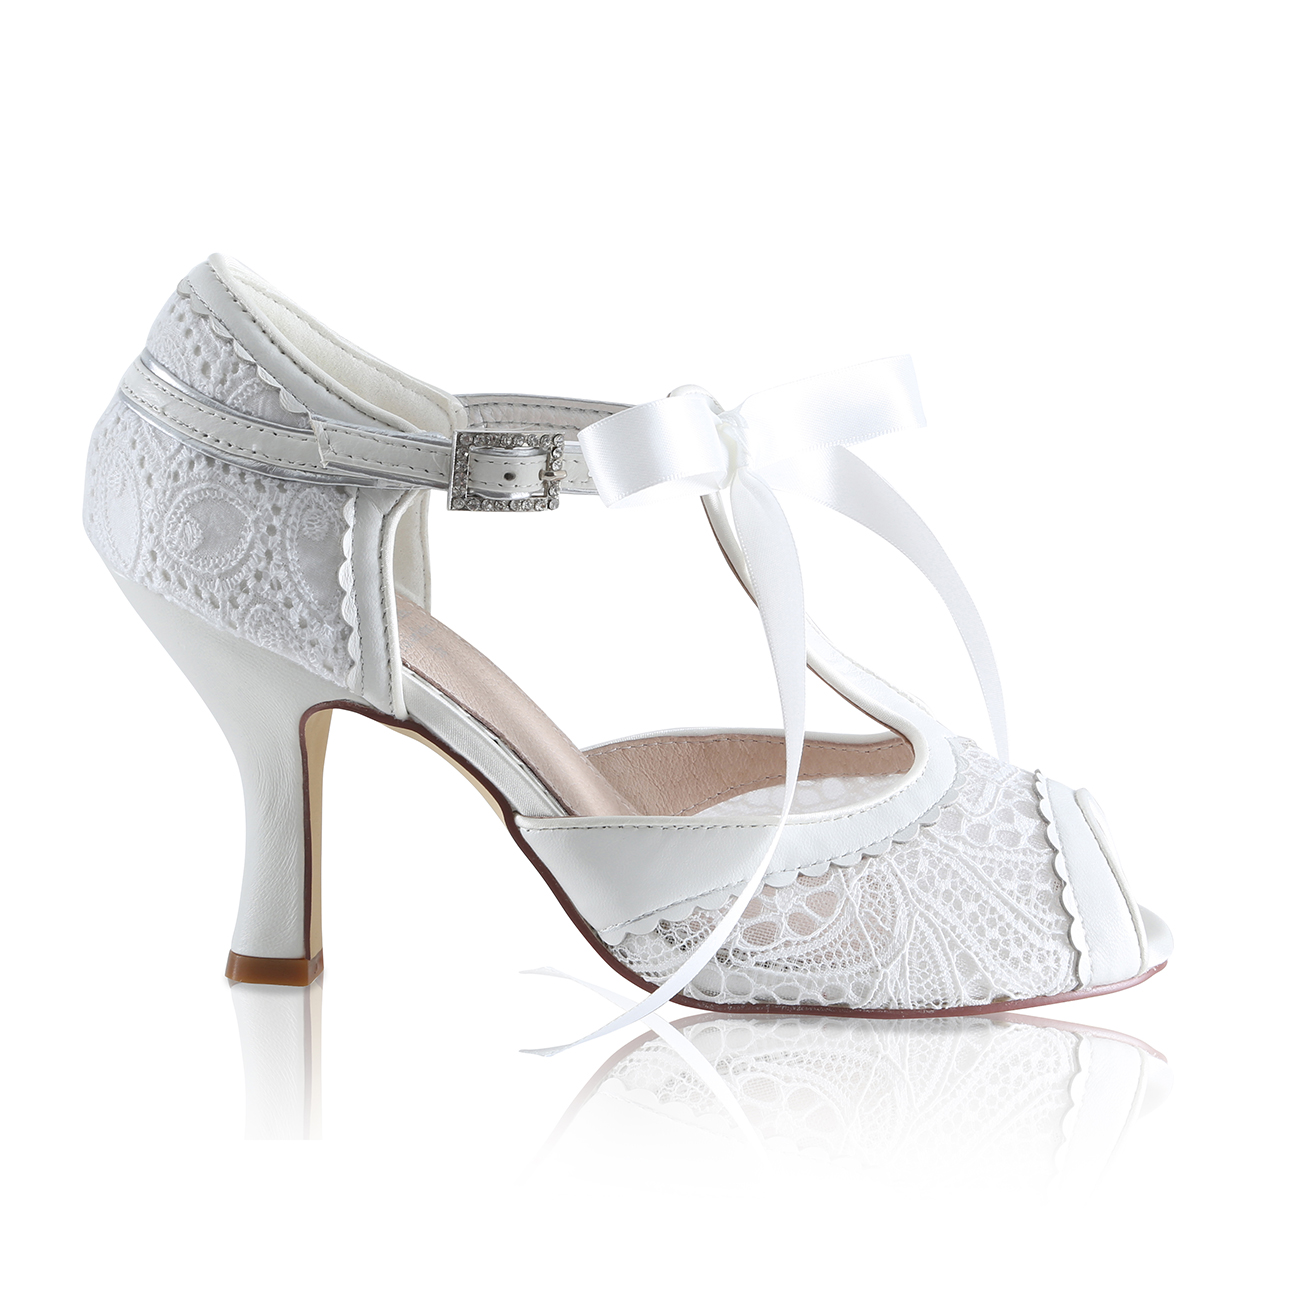 veronica ivory lace tapestry and leather vintage inspired t-bar bridal shoes with satin lace ribbon tie